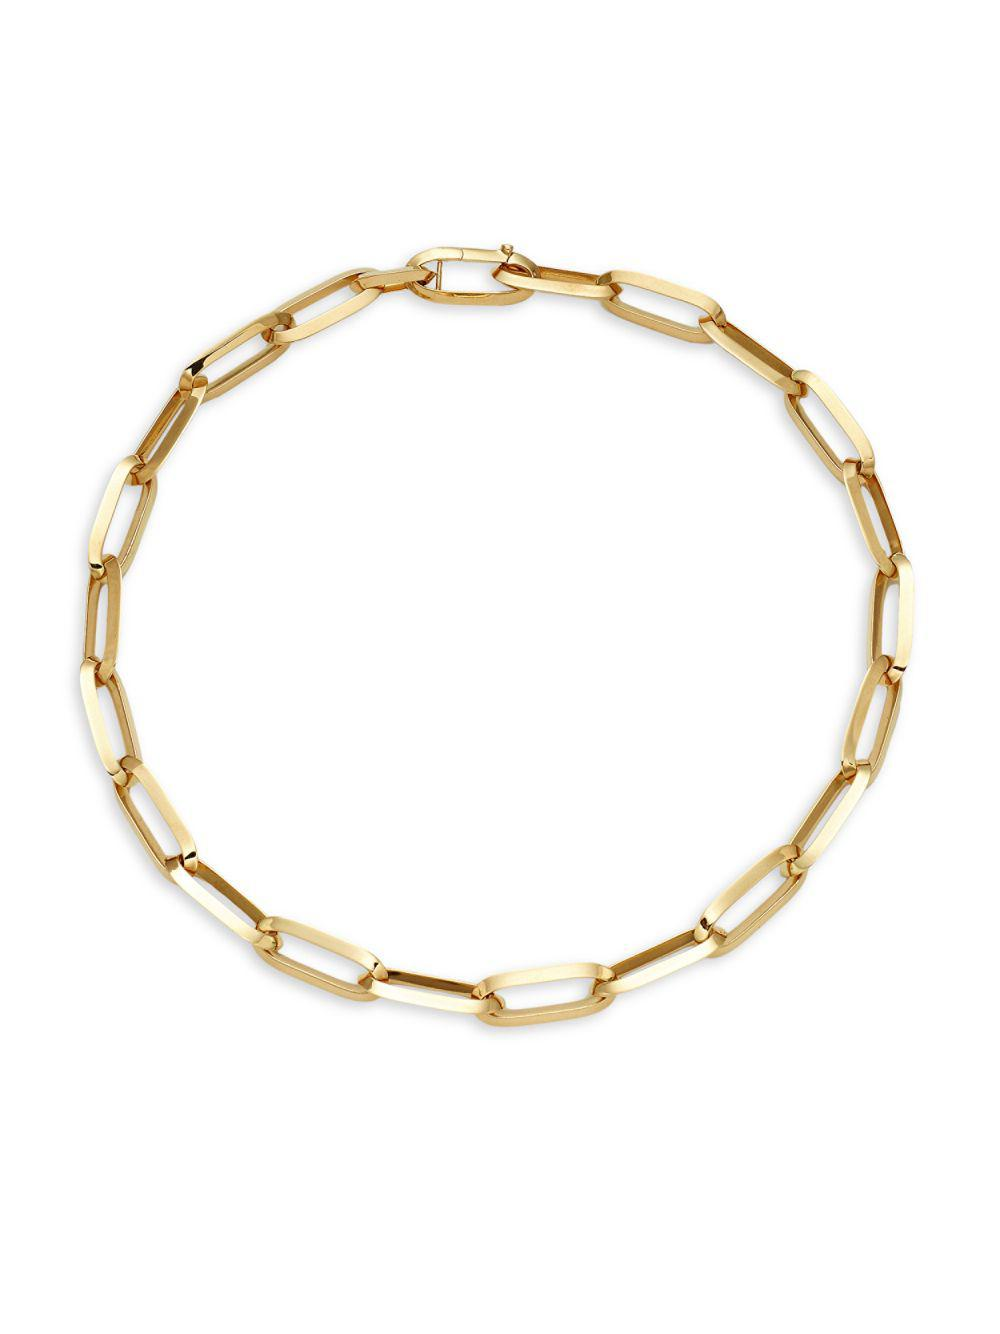 Roberto Coin 18k Yellow Gold Chain Link Necklace in Metallic - Lyst